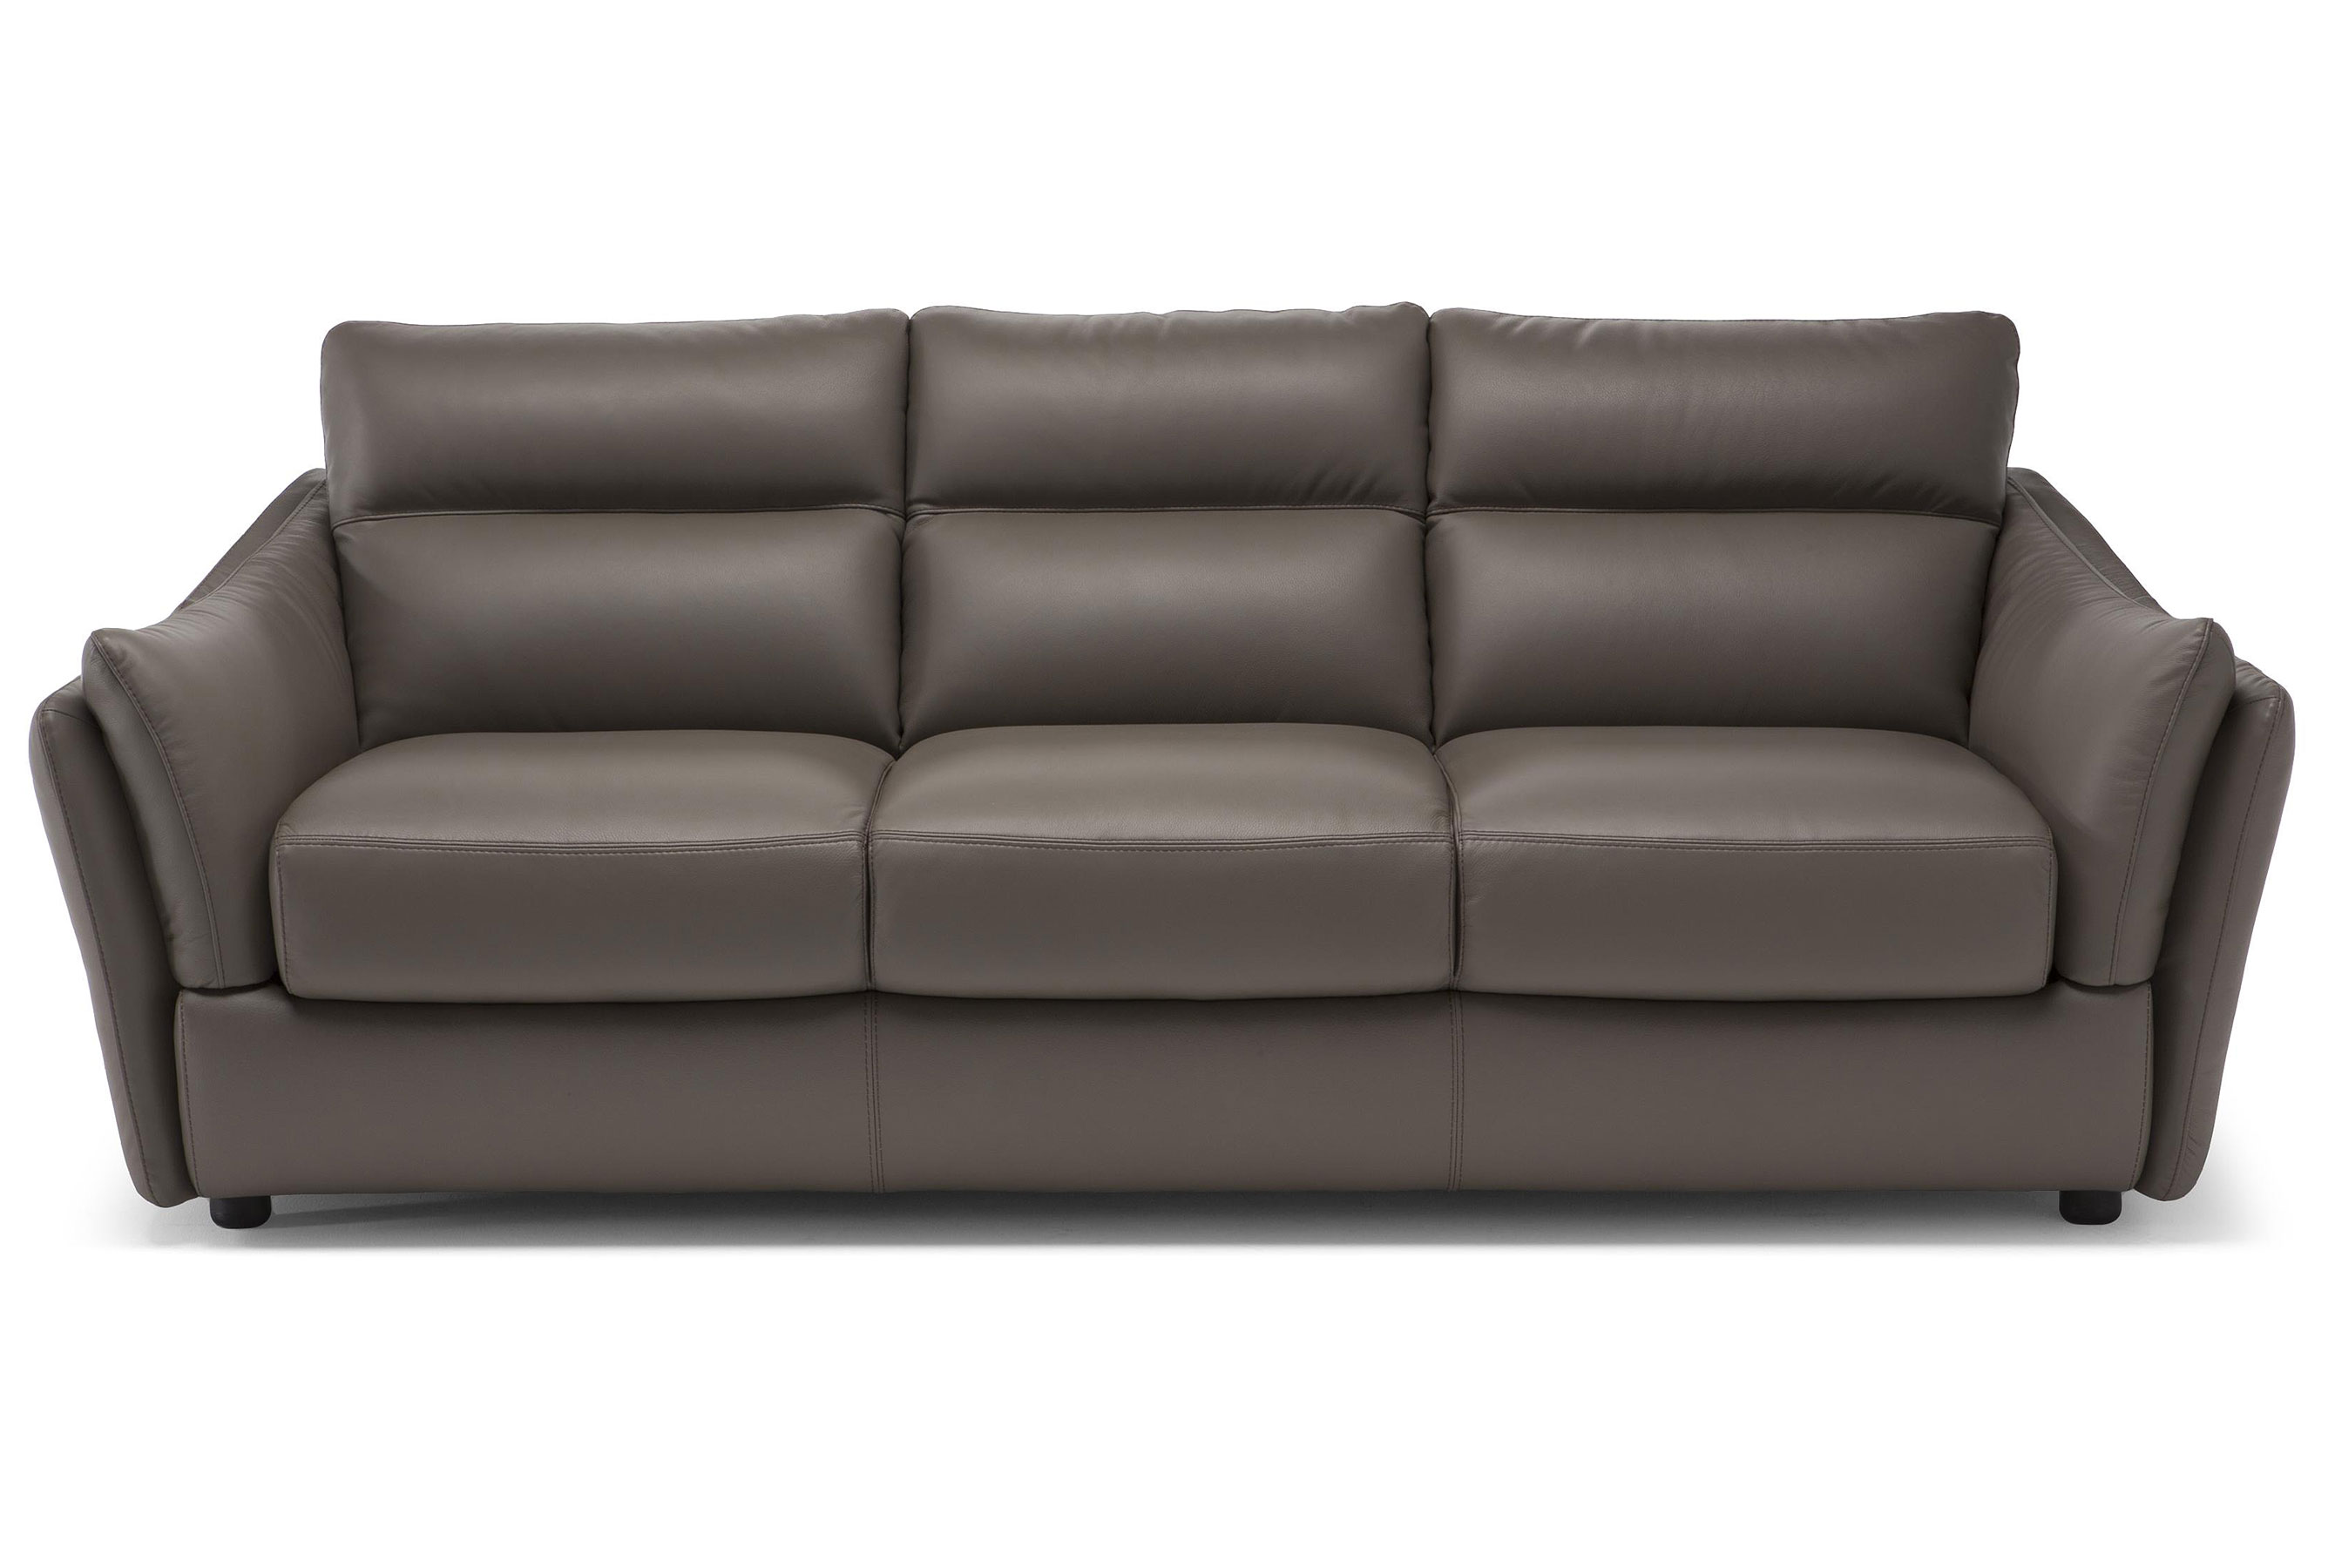 Etonnant Affetto C055 **Top Grain Leather** Sofa. By Natuzzi Editions